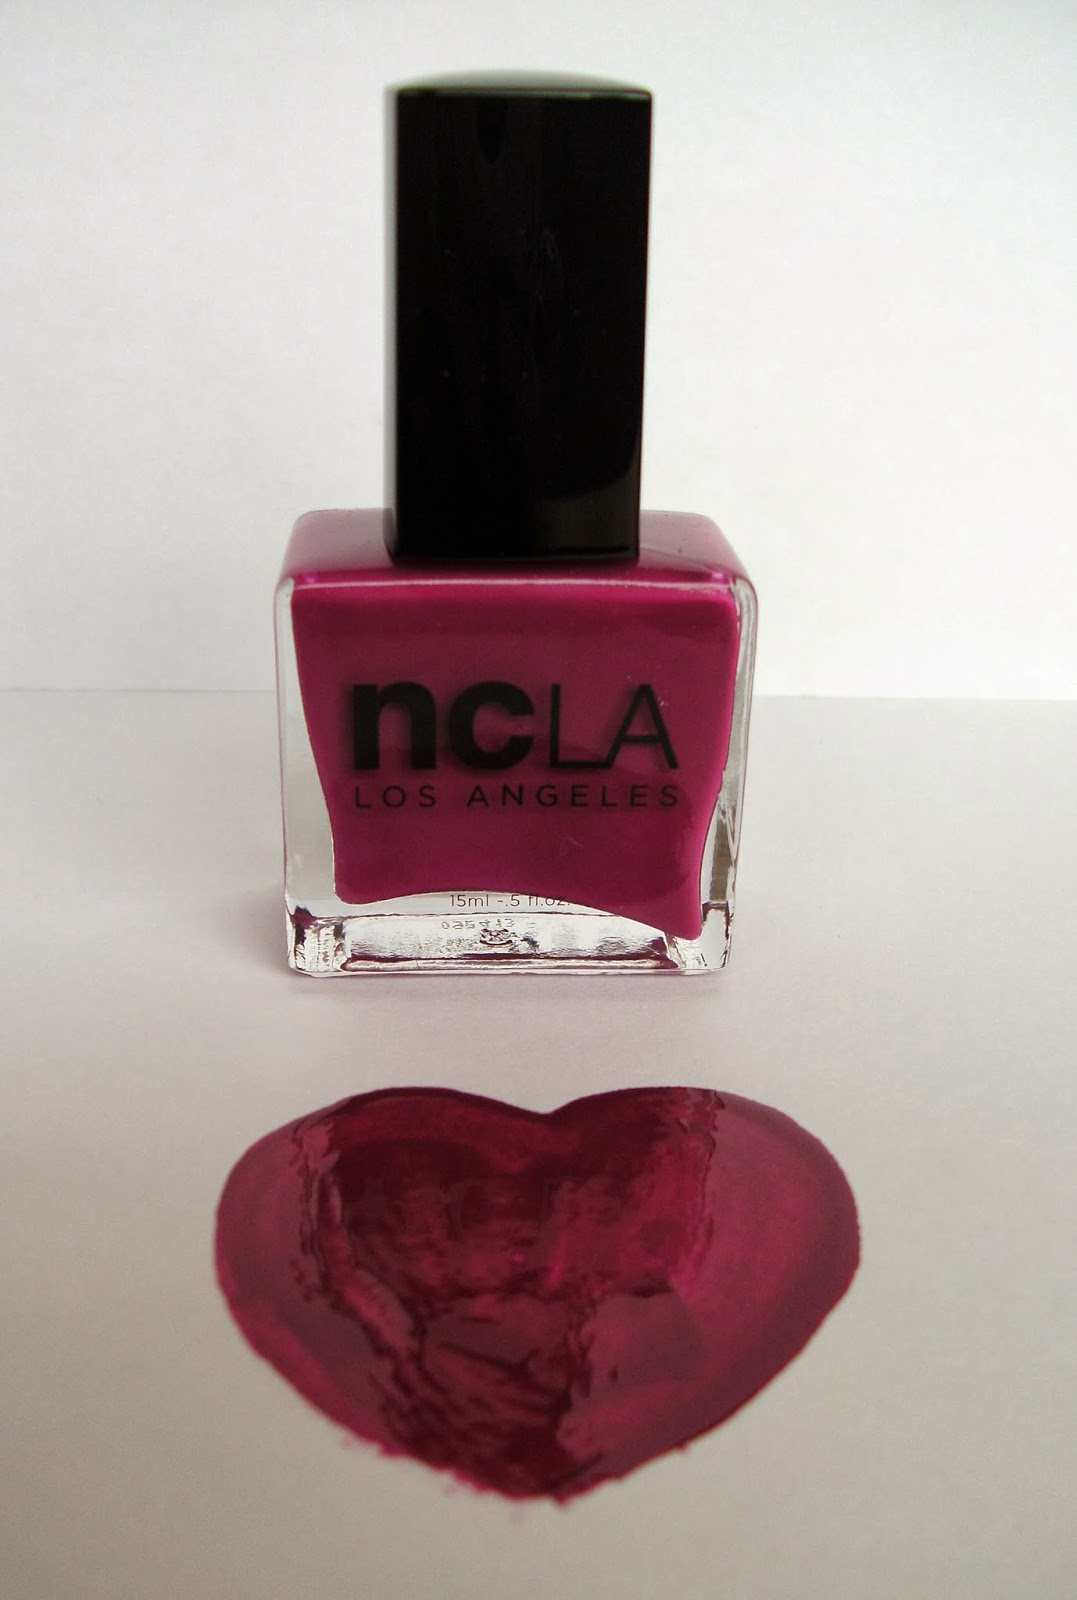 ncLA Nail Lacquer - Nail Lacquer Laurel Canyon Lolita - Swatch